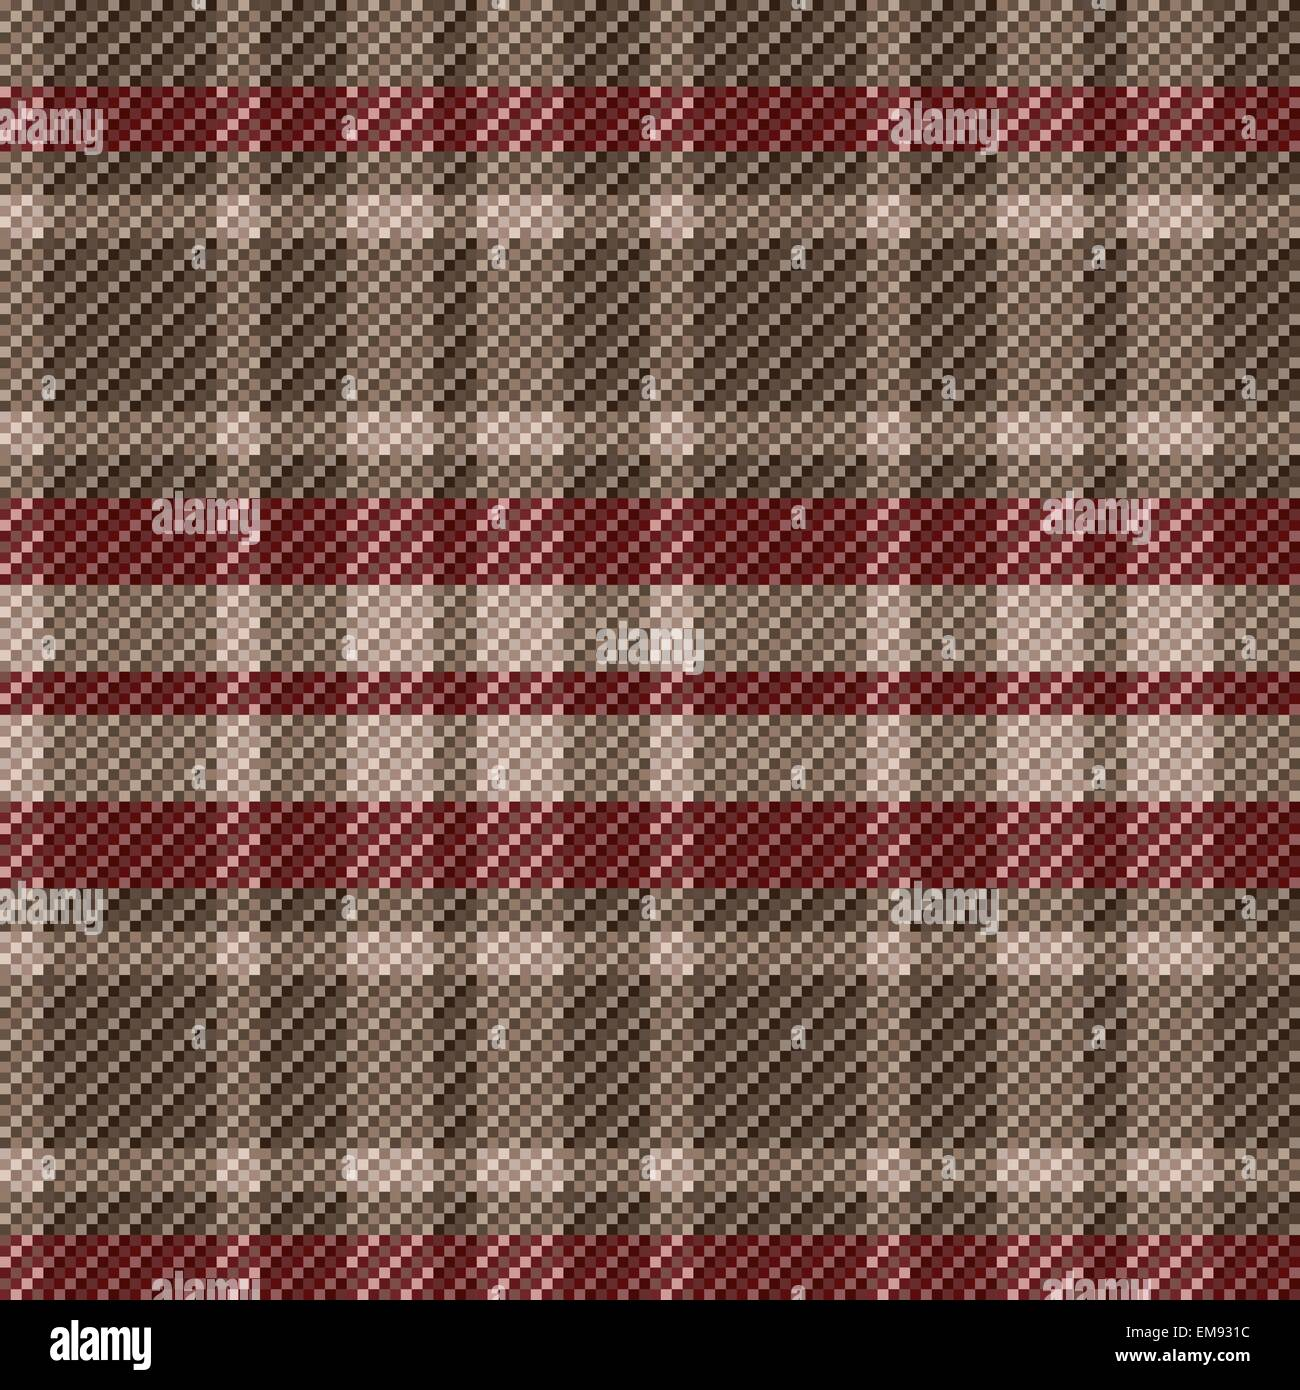 Checkered seamless tartan pattern - Stock Vector